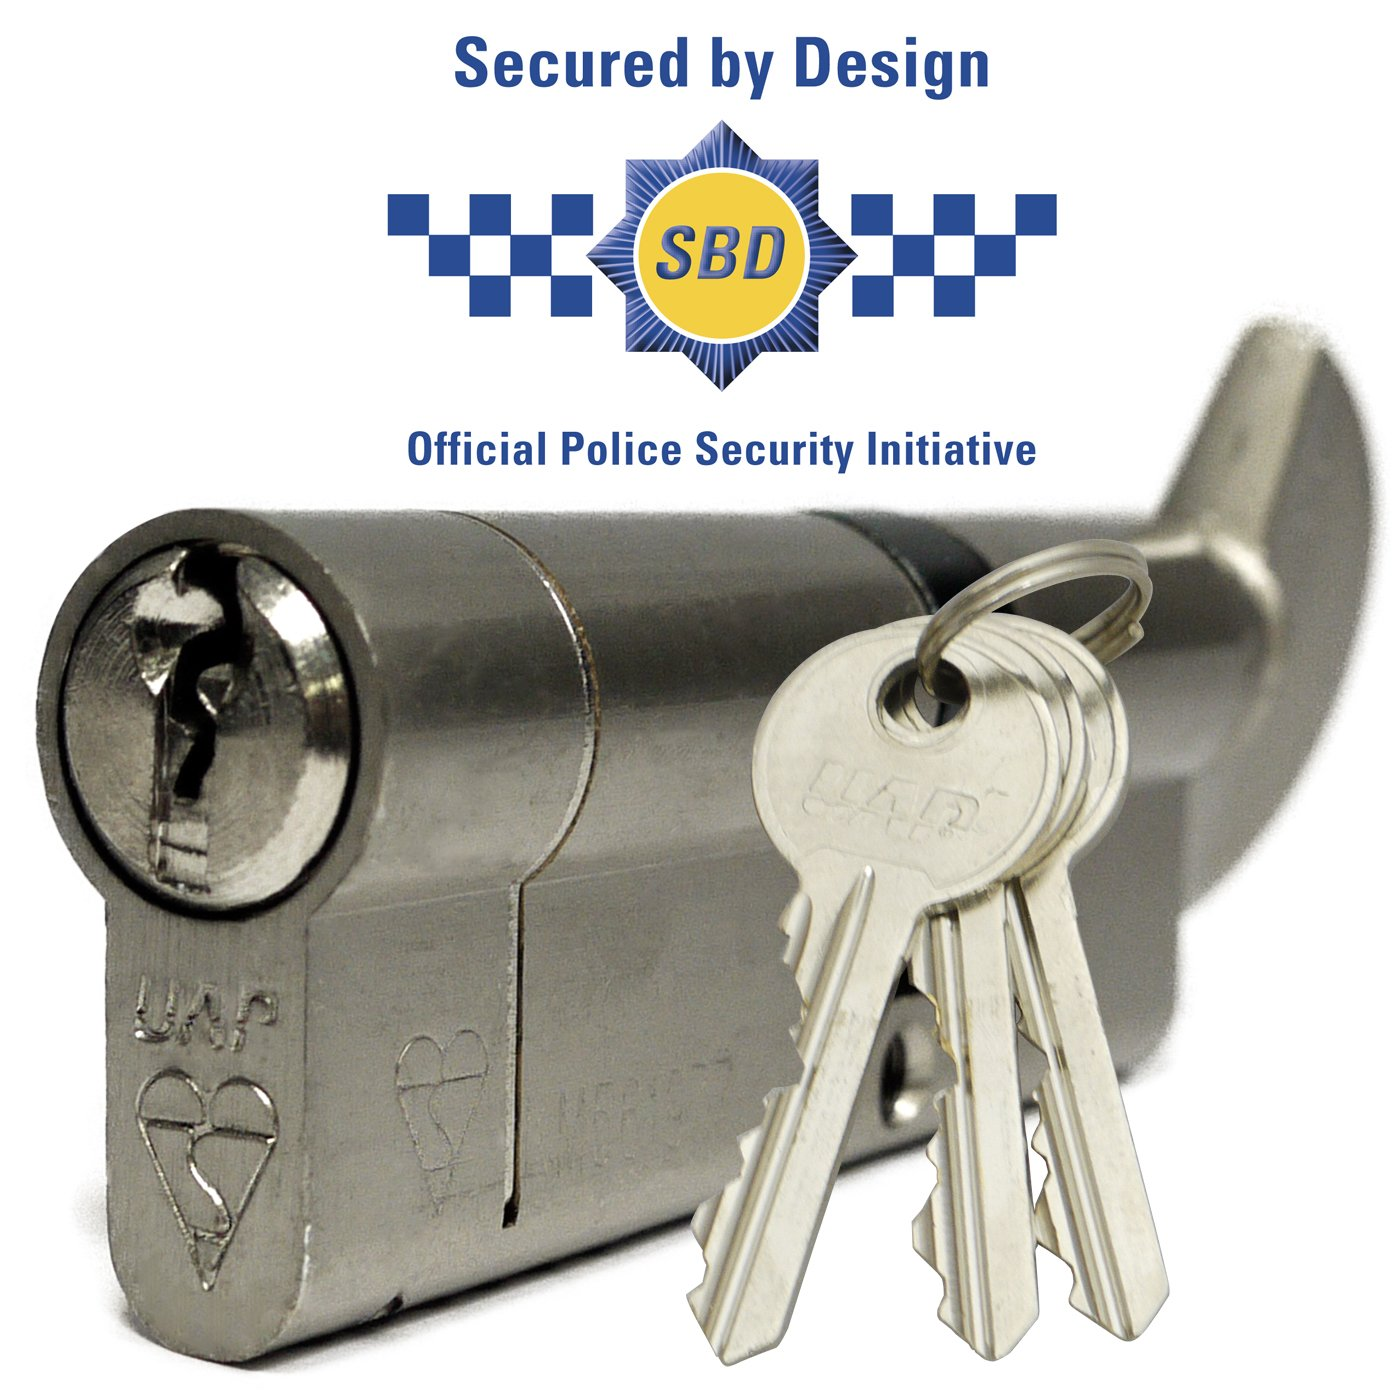 Secured by Design UAP 50T/50 (45T-10-45) 100mm Nickel High Security 1* Kitemarked Euro Thumb Turn Cylinder Door Lock